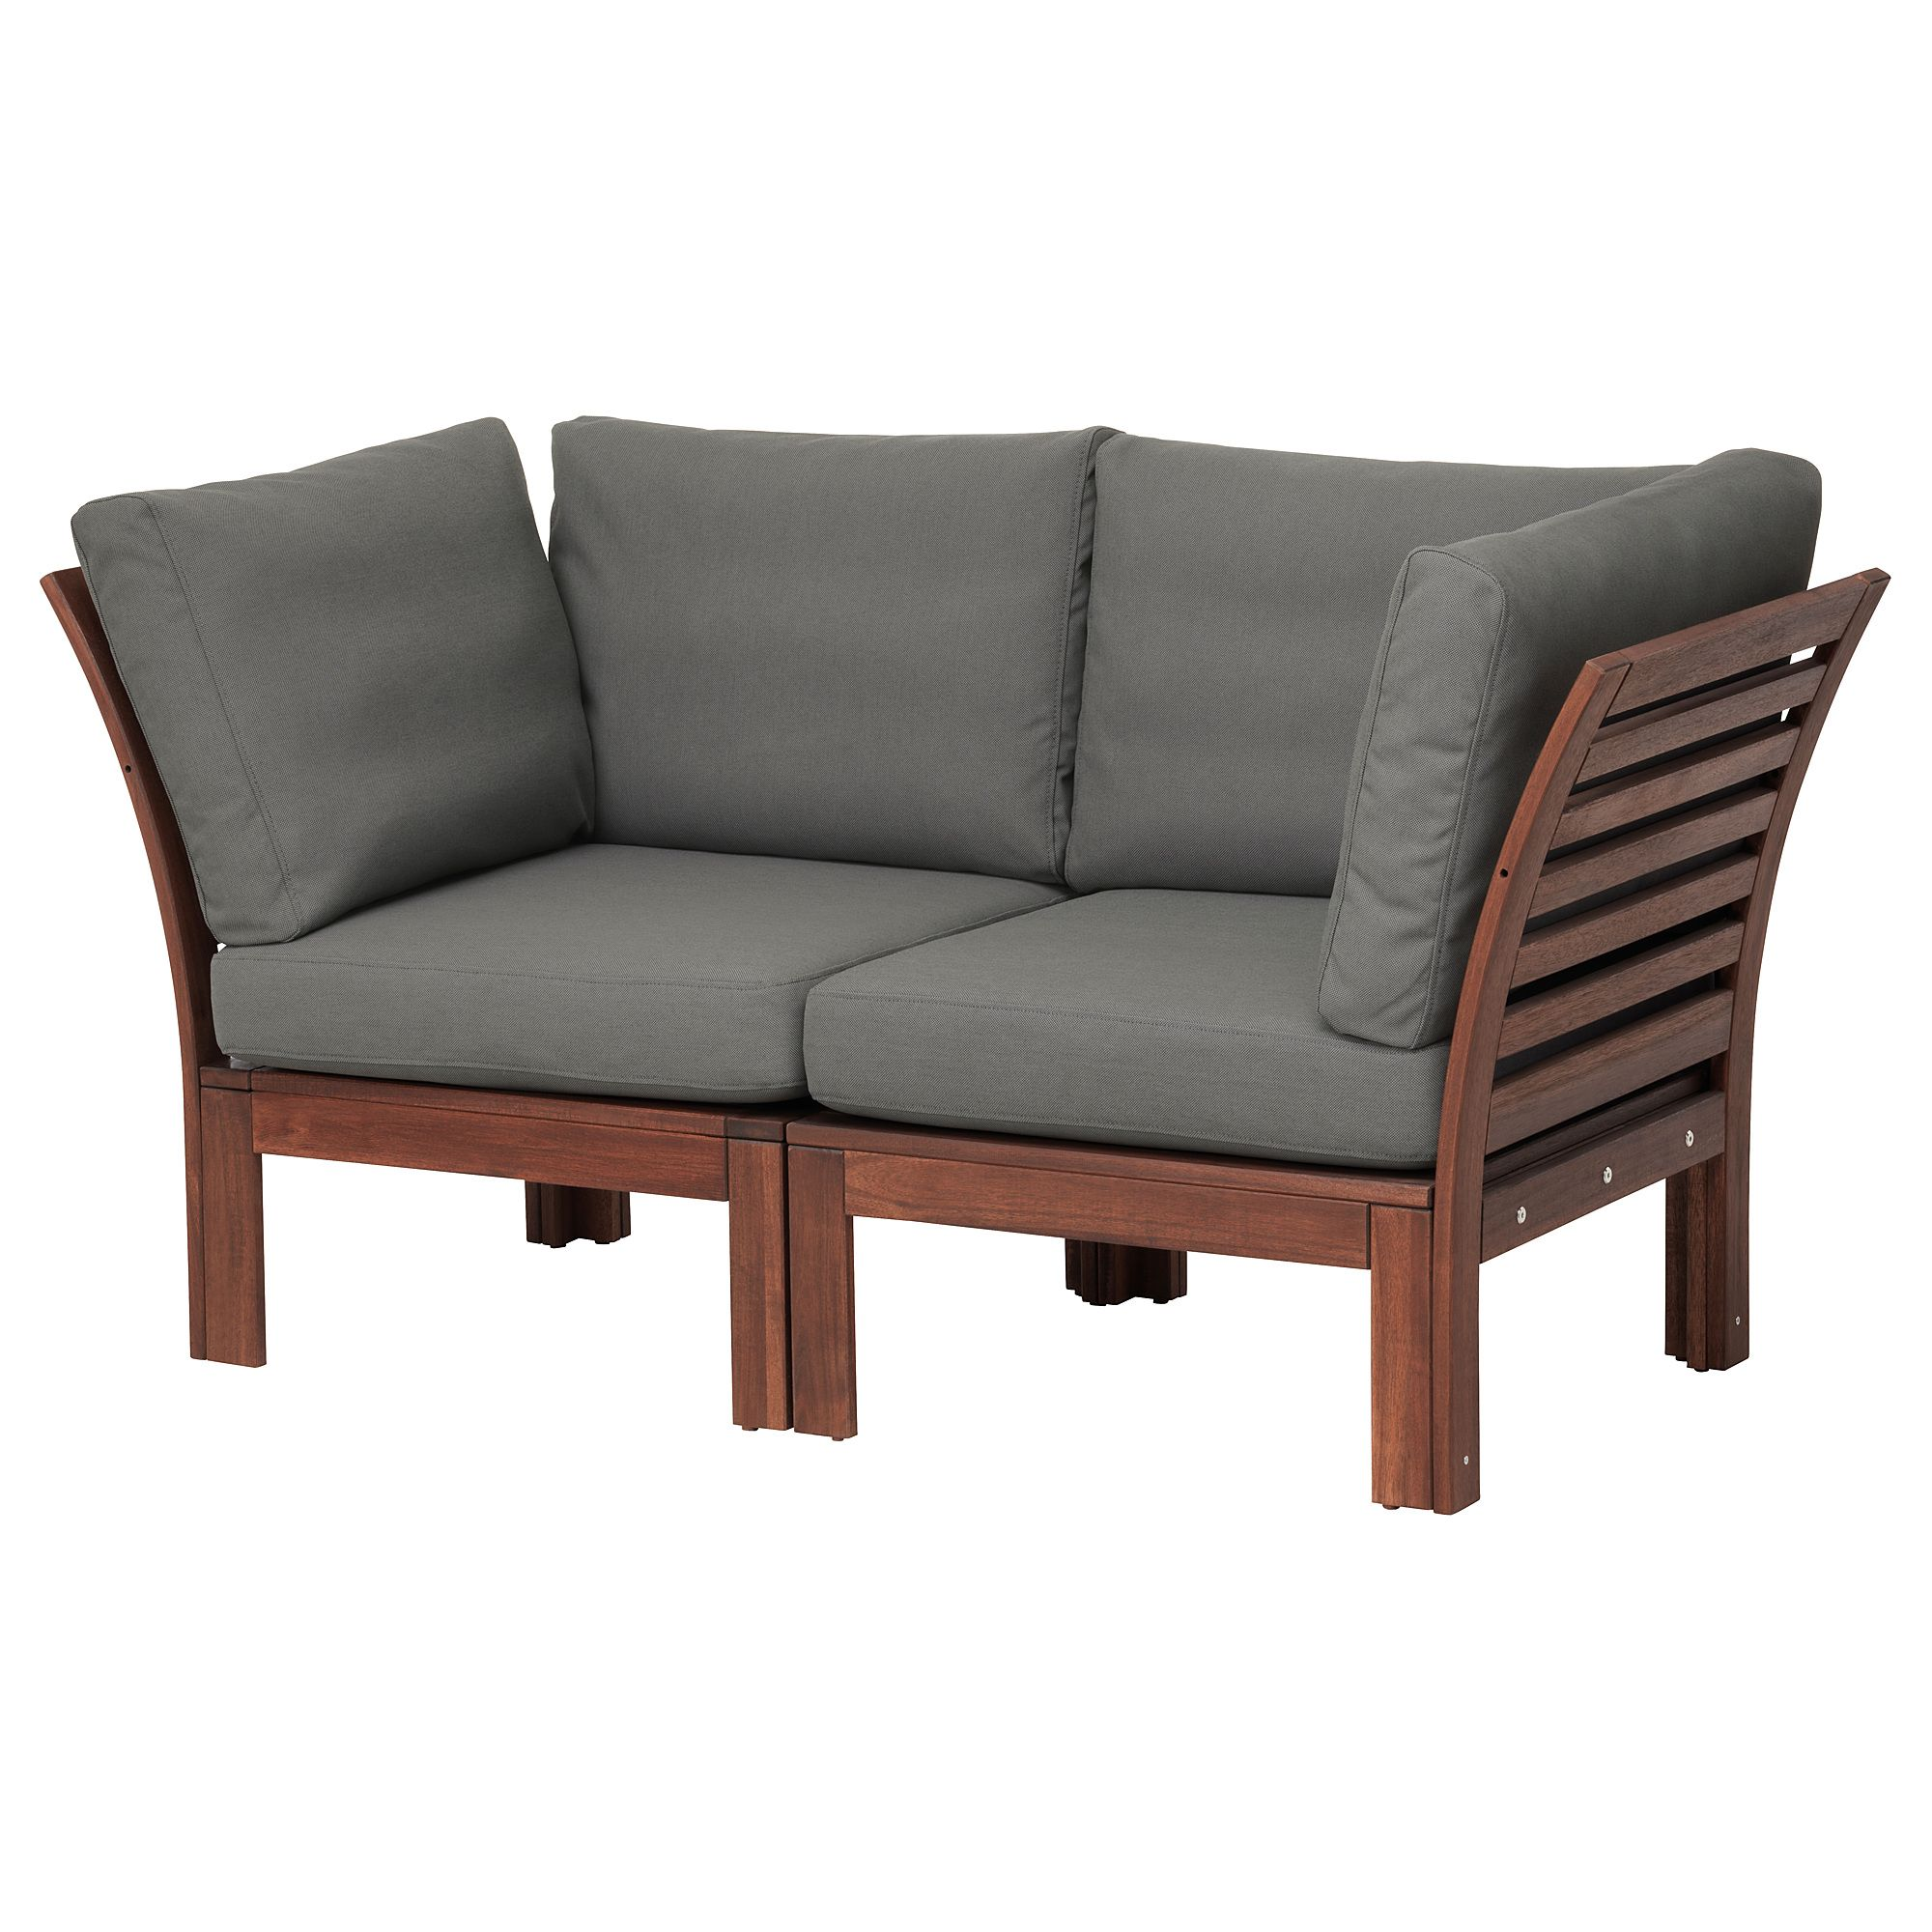 ÄPPLARÖ 2seat modular sofa, outdoor brown stained